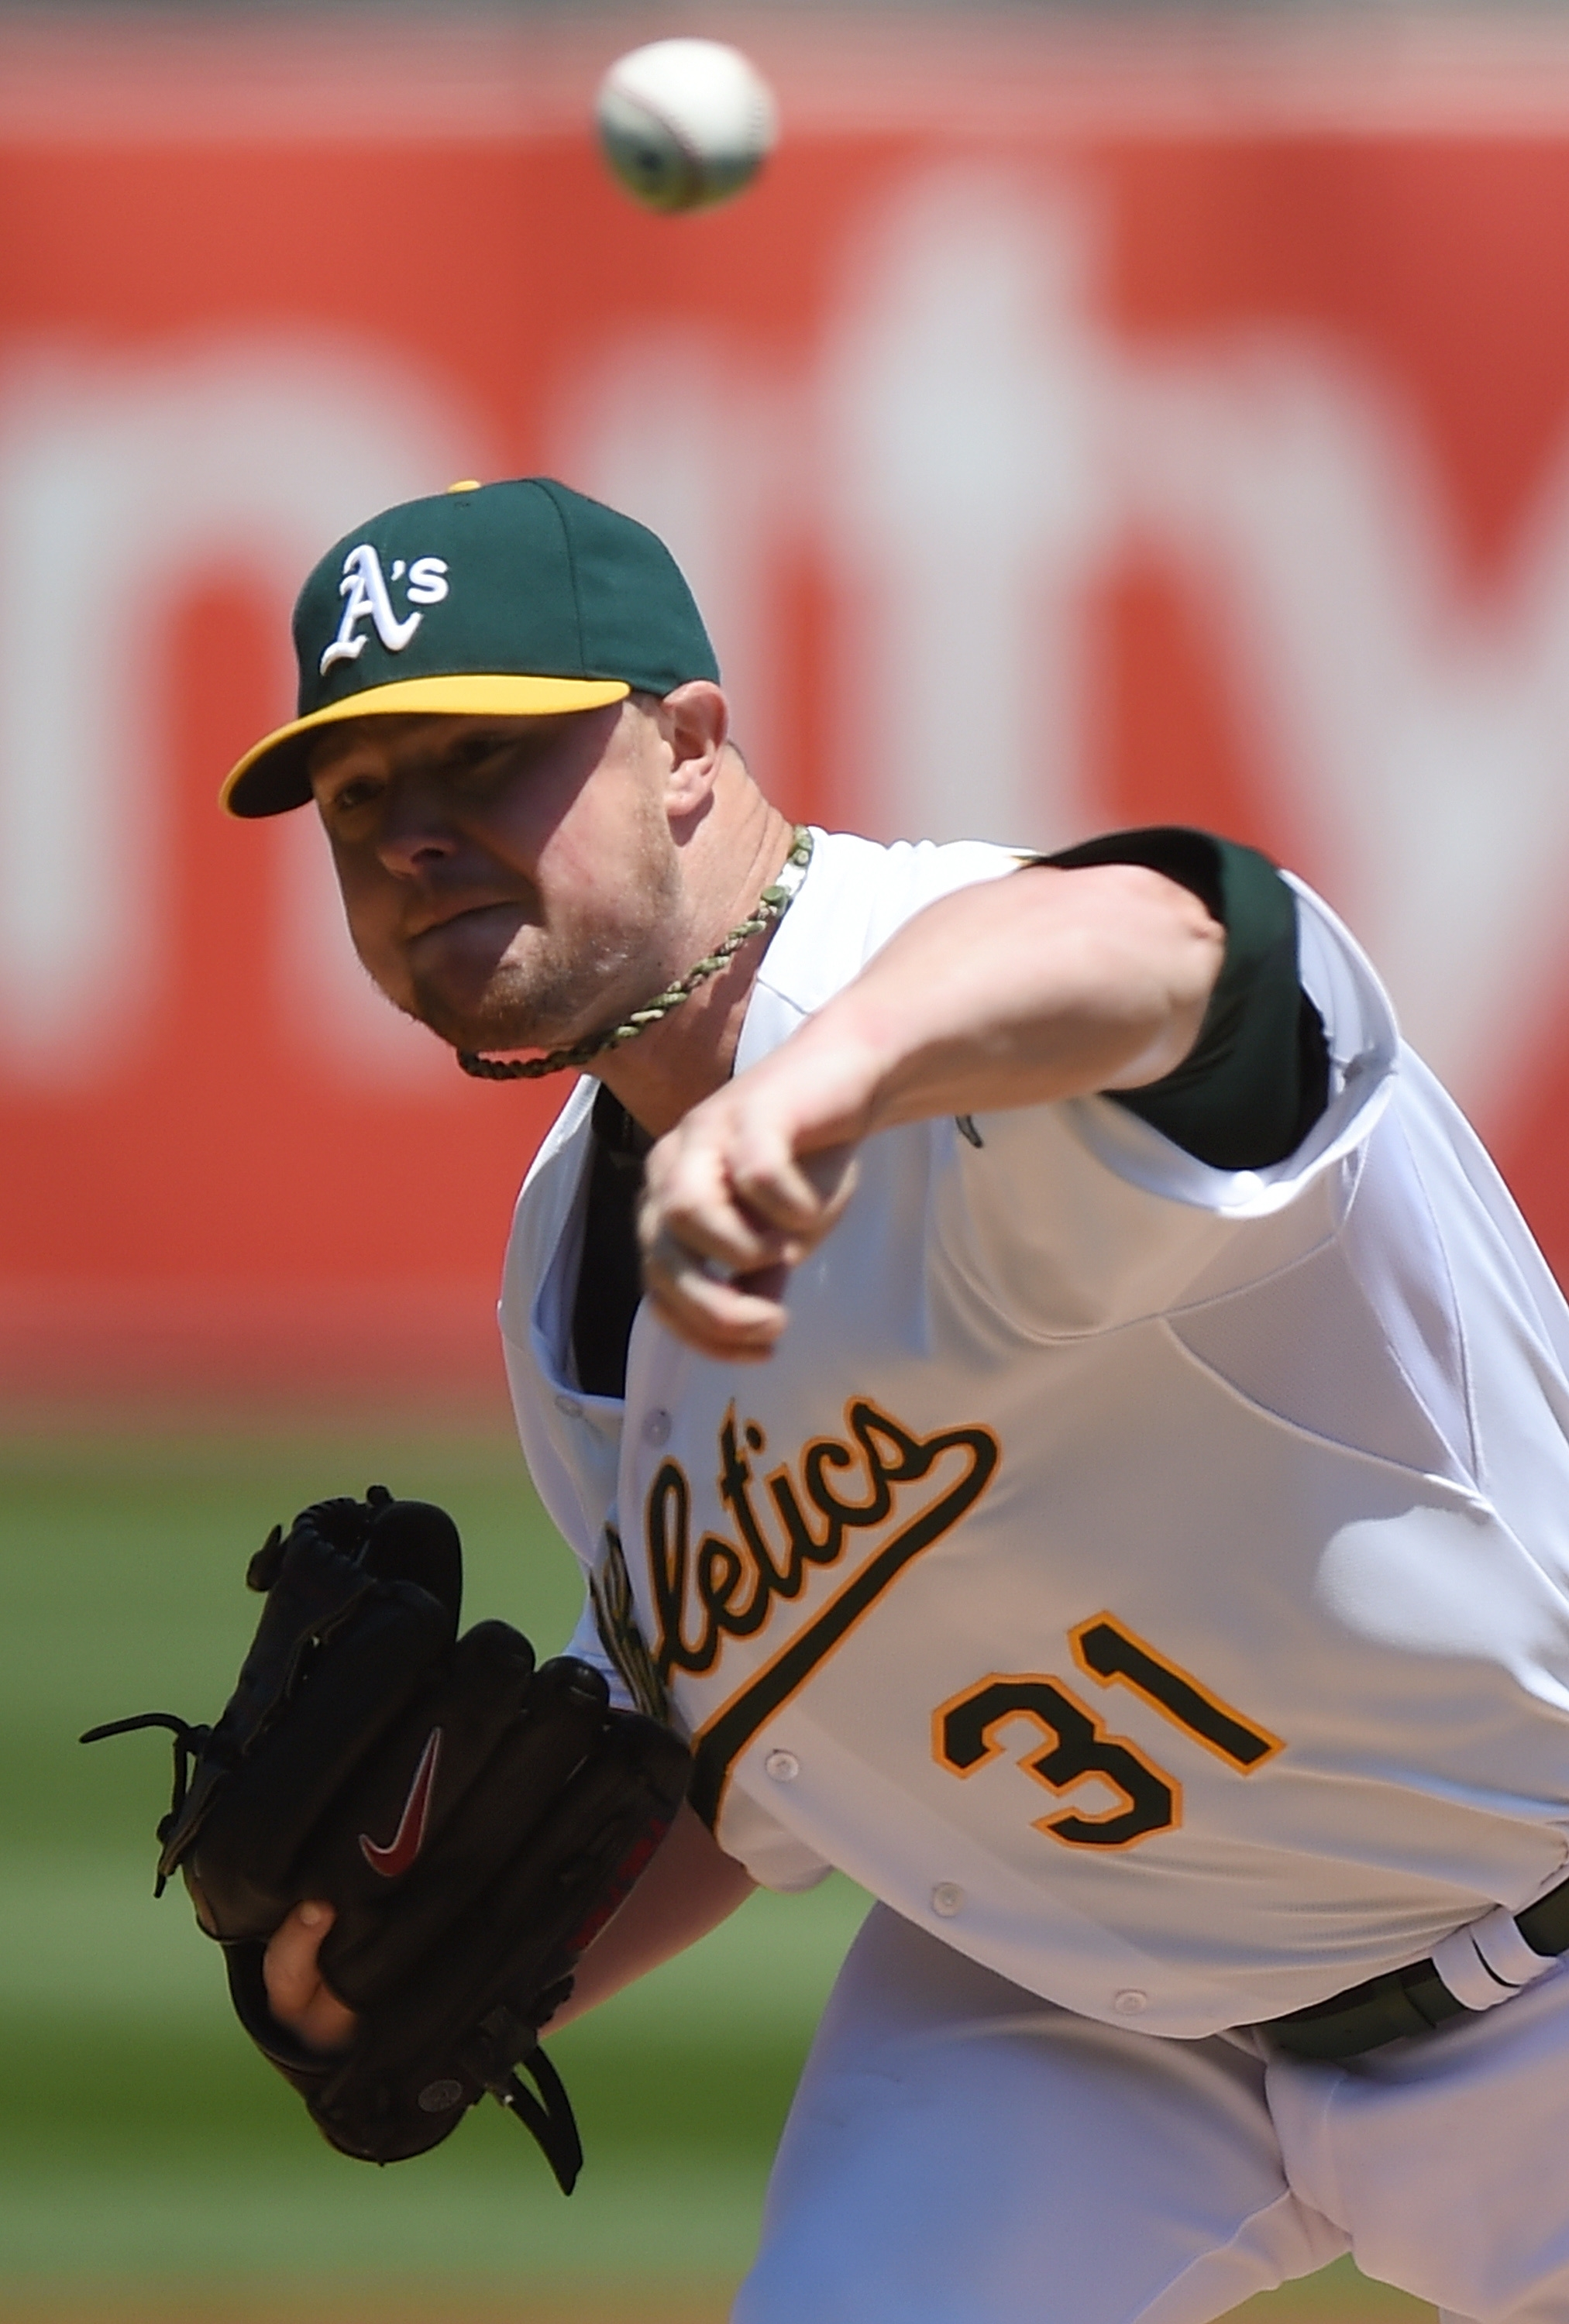 The acquisition of starter Jon Lester solidifies Oakland's status as one of the favorites to capture the American League pennant.